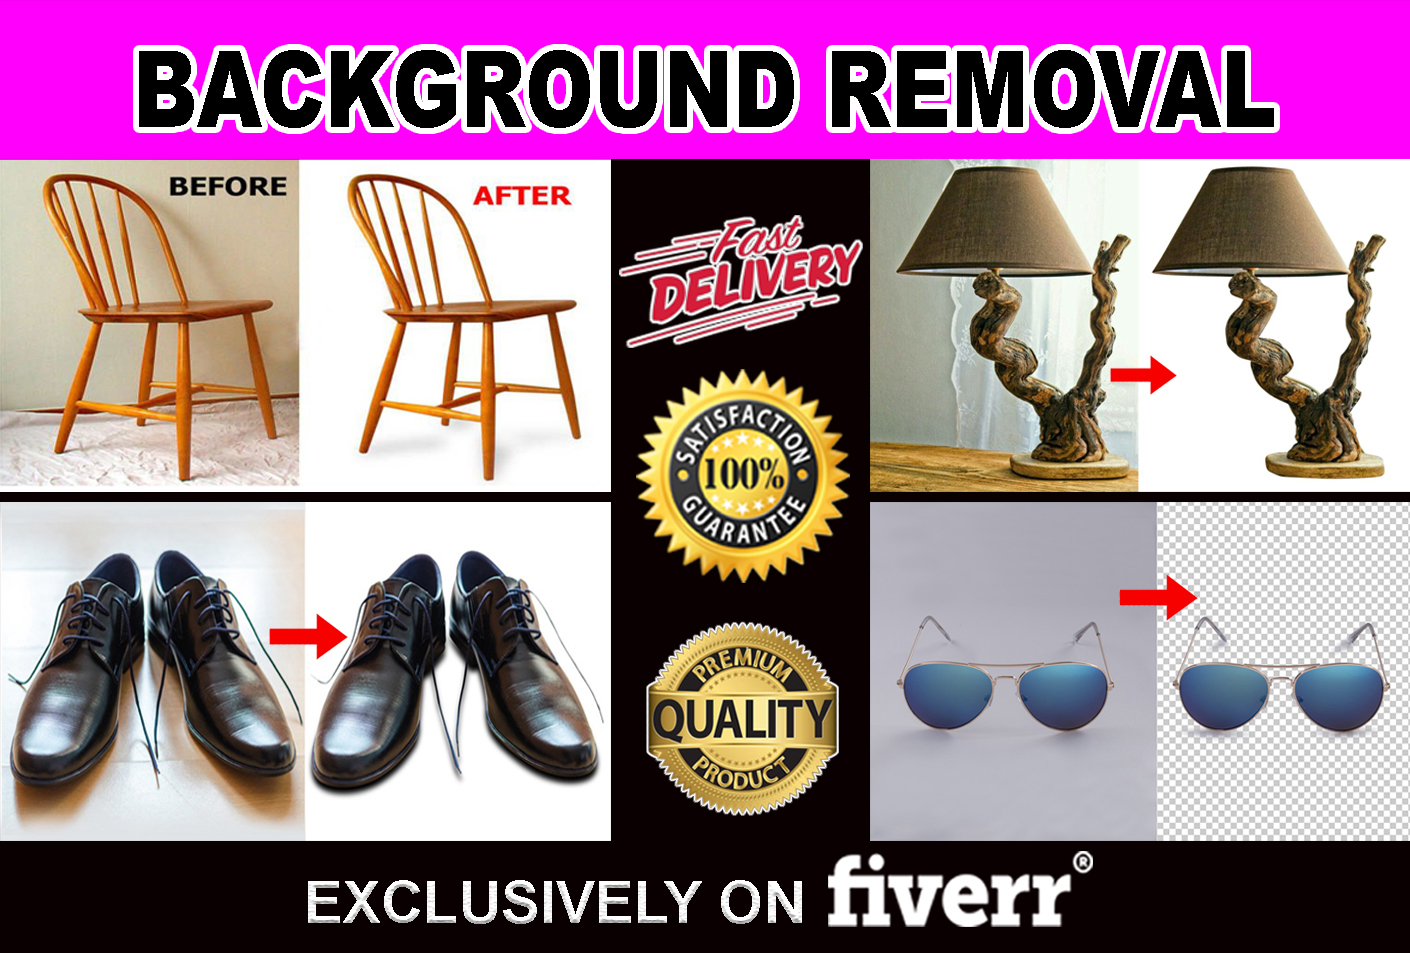 My Fiverr Blog I Will Do Photo Background Removal With Express 24h